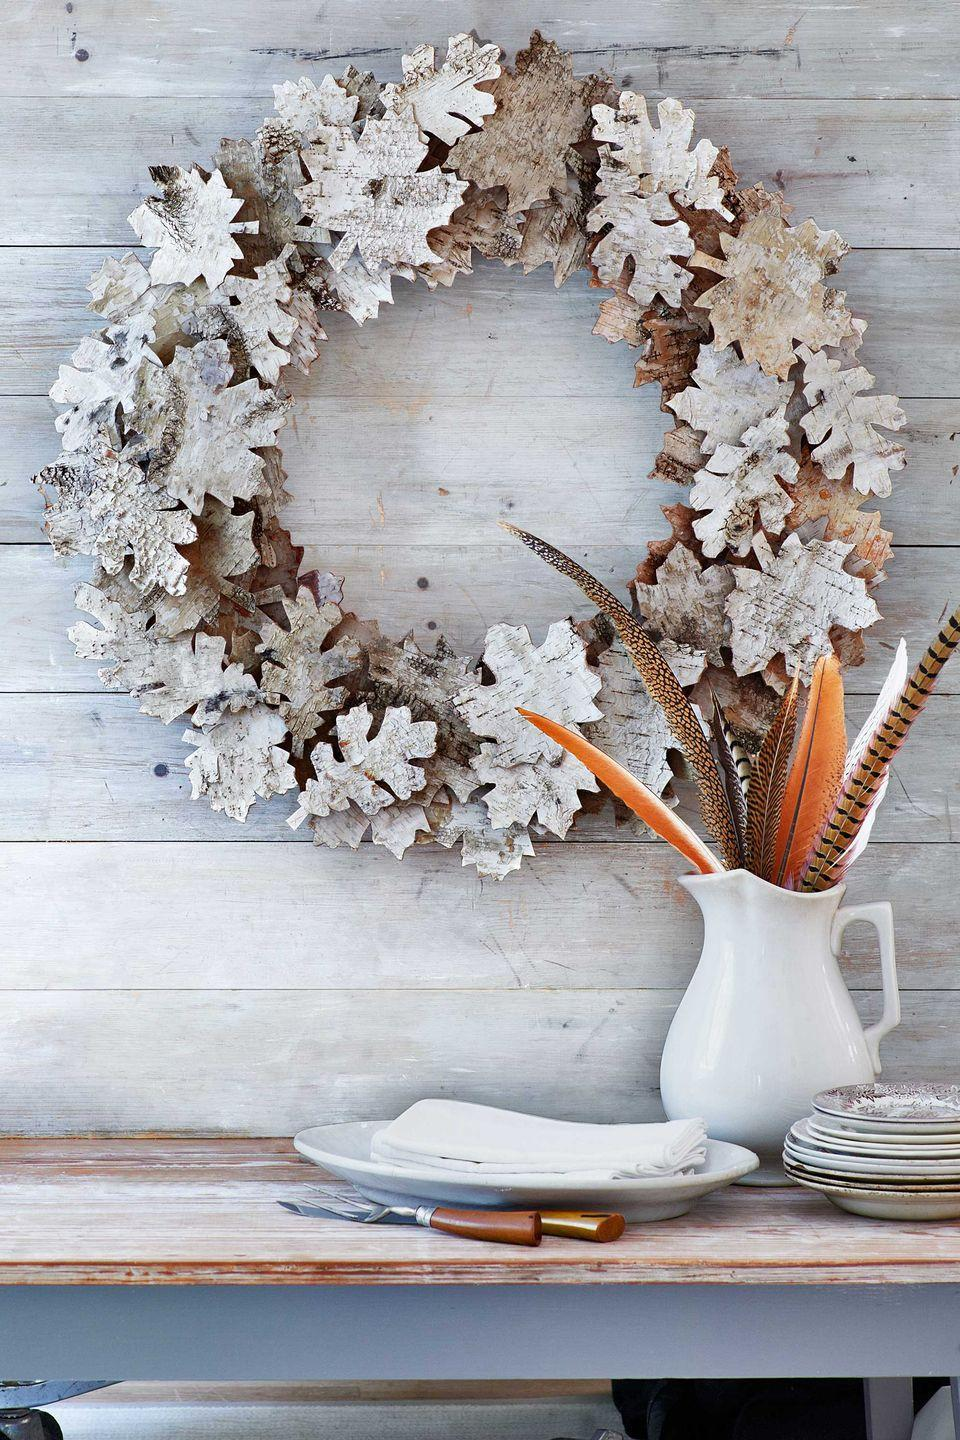 """<p>Birch bark is the key to these autumn """"leaves."""" You'll need 24 6 3/4""""W x 20 1/2""""L sheets of birch bark, a 20-inch-diameter foam wreath form, and 45 small wooden cubes to act as risers<em>. </em>First, print and cut out our <a href=""""http://clv.h-cdn.co/assets/cm/15/27/559438a2f0fa5_-_leaf-templates-1113.pdf"""" rel=""""nofollow noopener"""" target=""""_blank"""" data-ylk=""""slk:oak- and maple-leaf templates"""" class=""""link rapid-noclick-resp"""">oak- and maple-leaf templates</a>. Trace 75 assorted leaves onto the birch-bark sheets, and cut out. Varying the leaf type, hot-glue 30 leaves onto the wreath form. Then, hot-glue a wooden cube onto the back of each remaining leaf. Using our photo as a guide, hot-glue the cube-backed leaves atop the original leaves. </p>"""